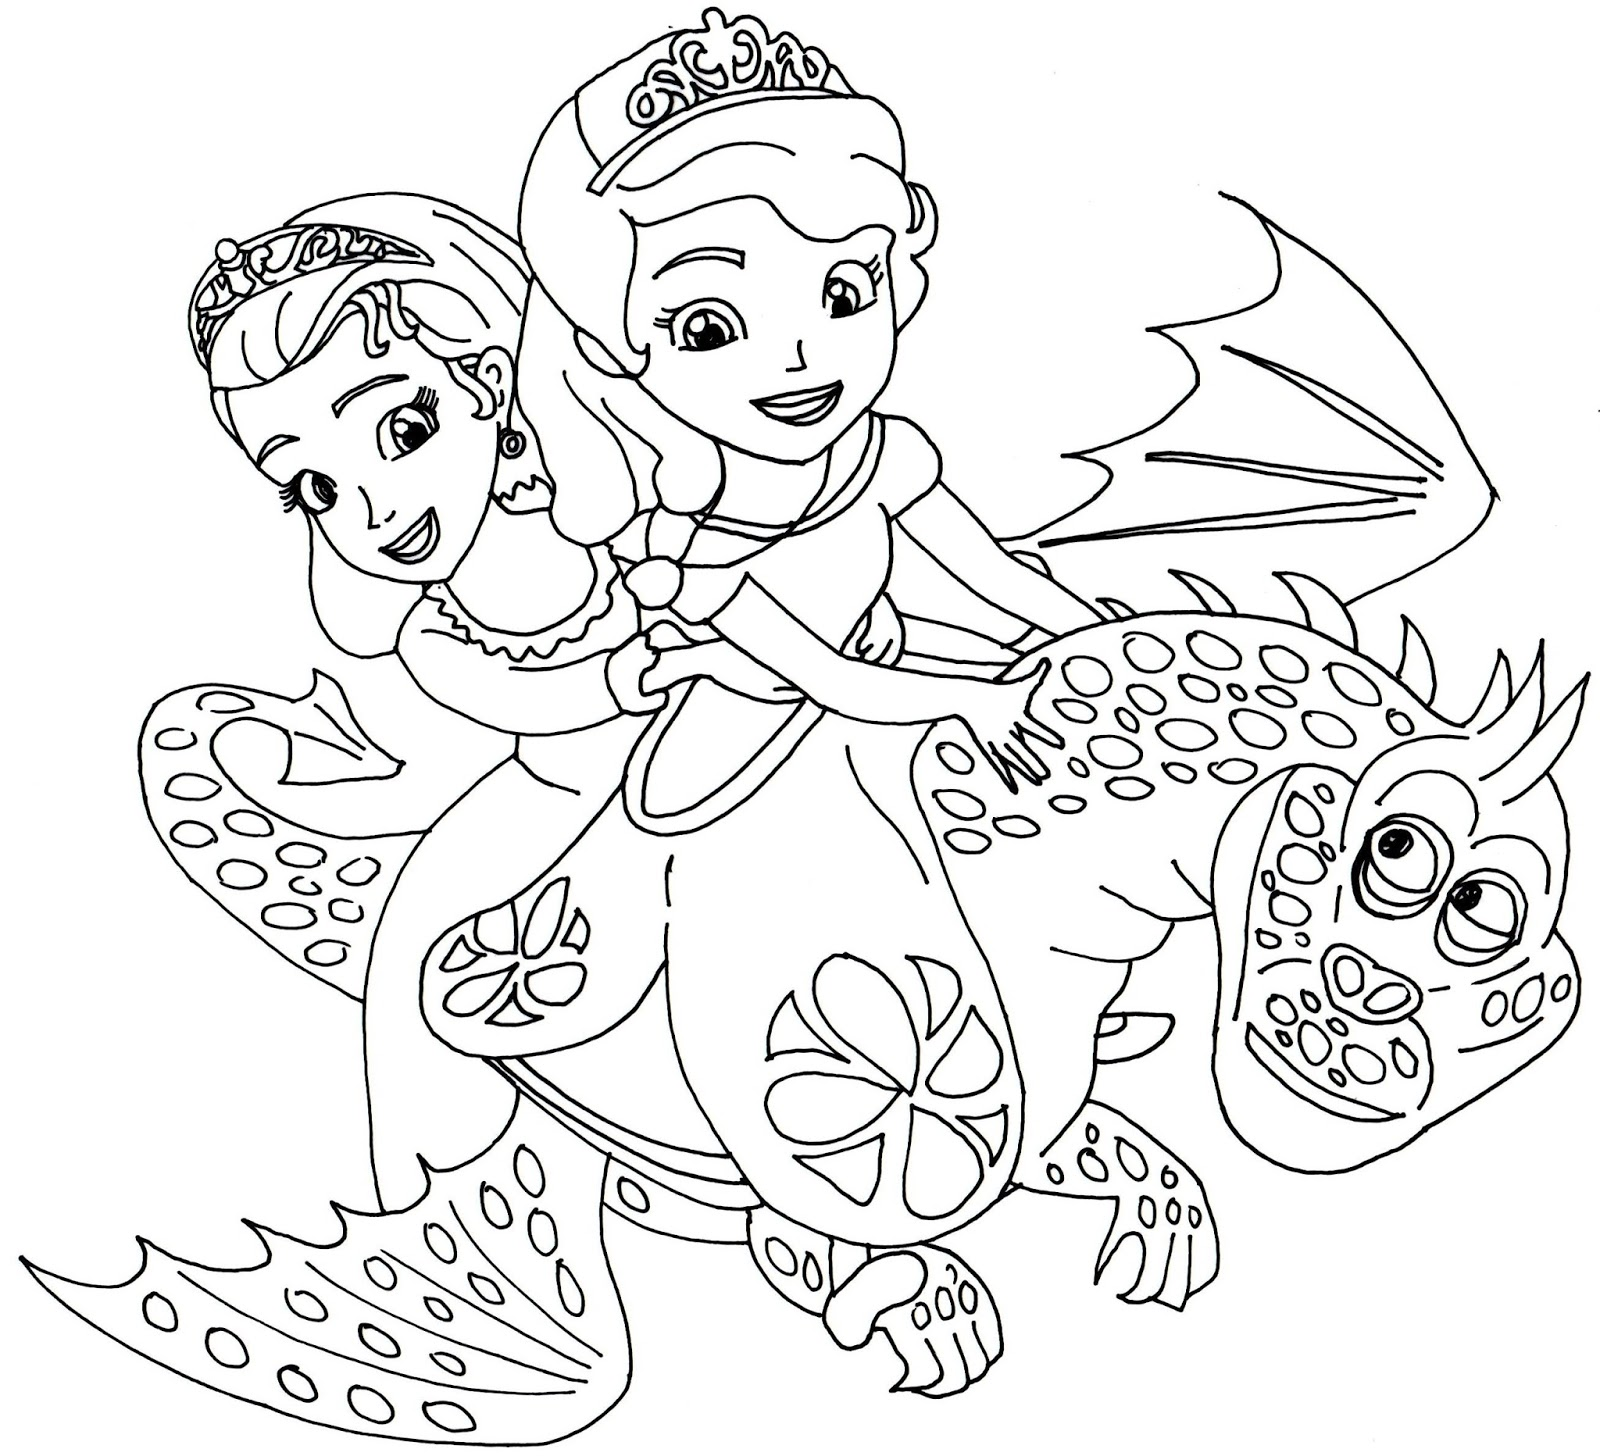 sofia the first the curse of princess ivy coloring pages